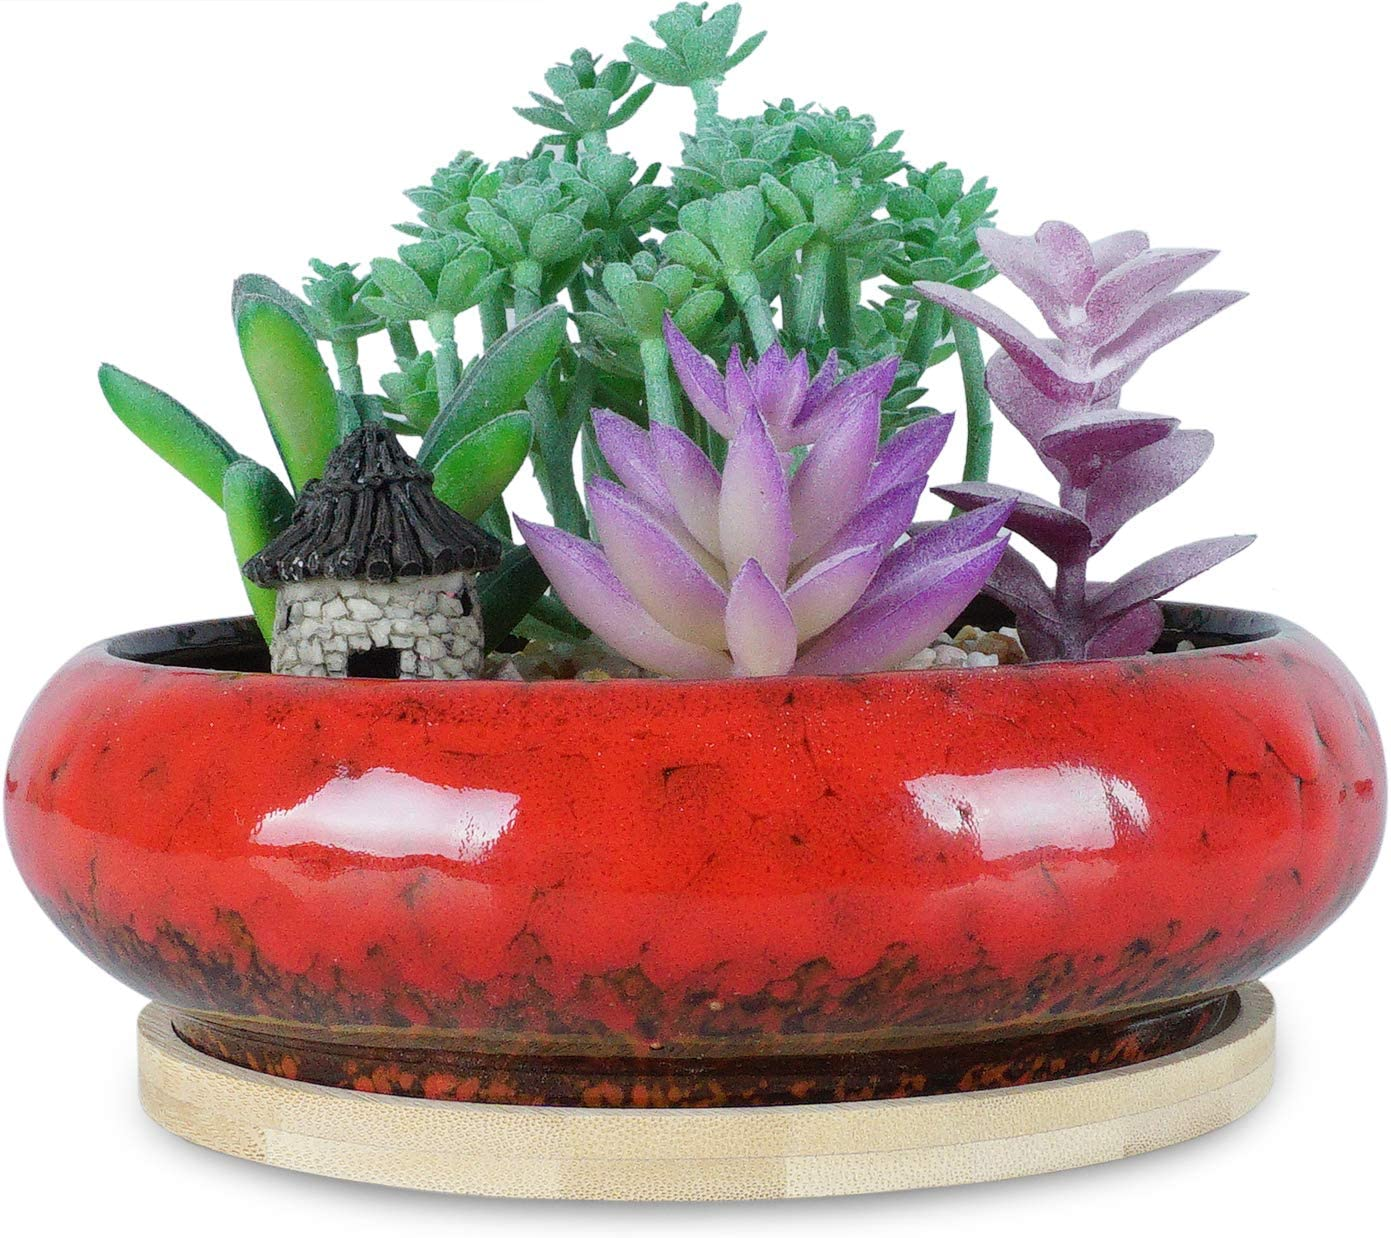 ARTKETTY 7.3 inch Round Succulent Planter Pots with Drainage Hole Bonsai Pots Garden Decorative Cactus Stand Ceramic Glazed Flower Container Bowl Red, with Bamboo Tray